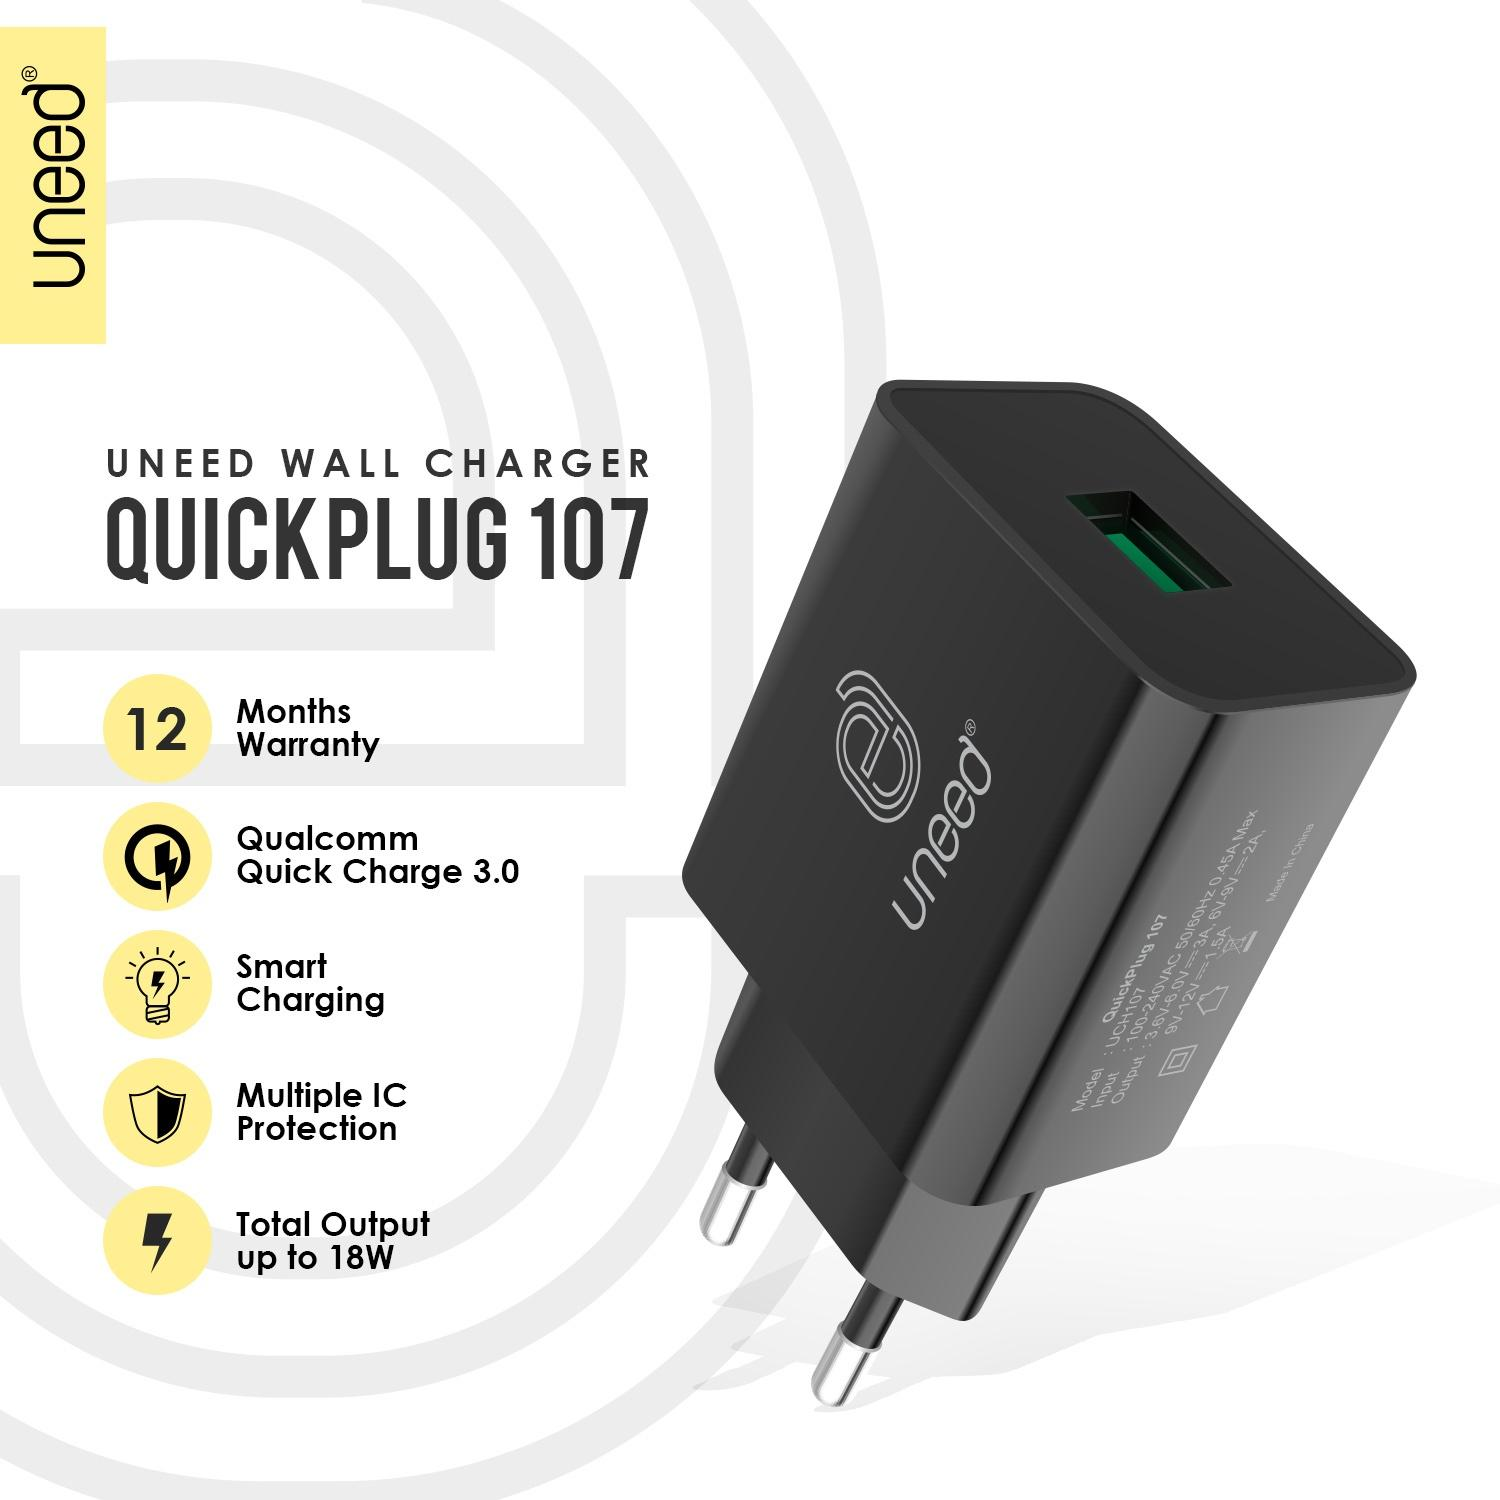 UNEED Quickplug 107 Qualcomm Quick Charge 3.0 - UCH107 - Original